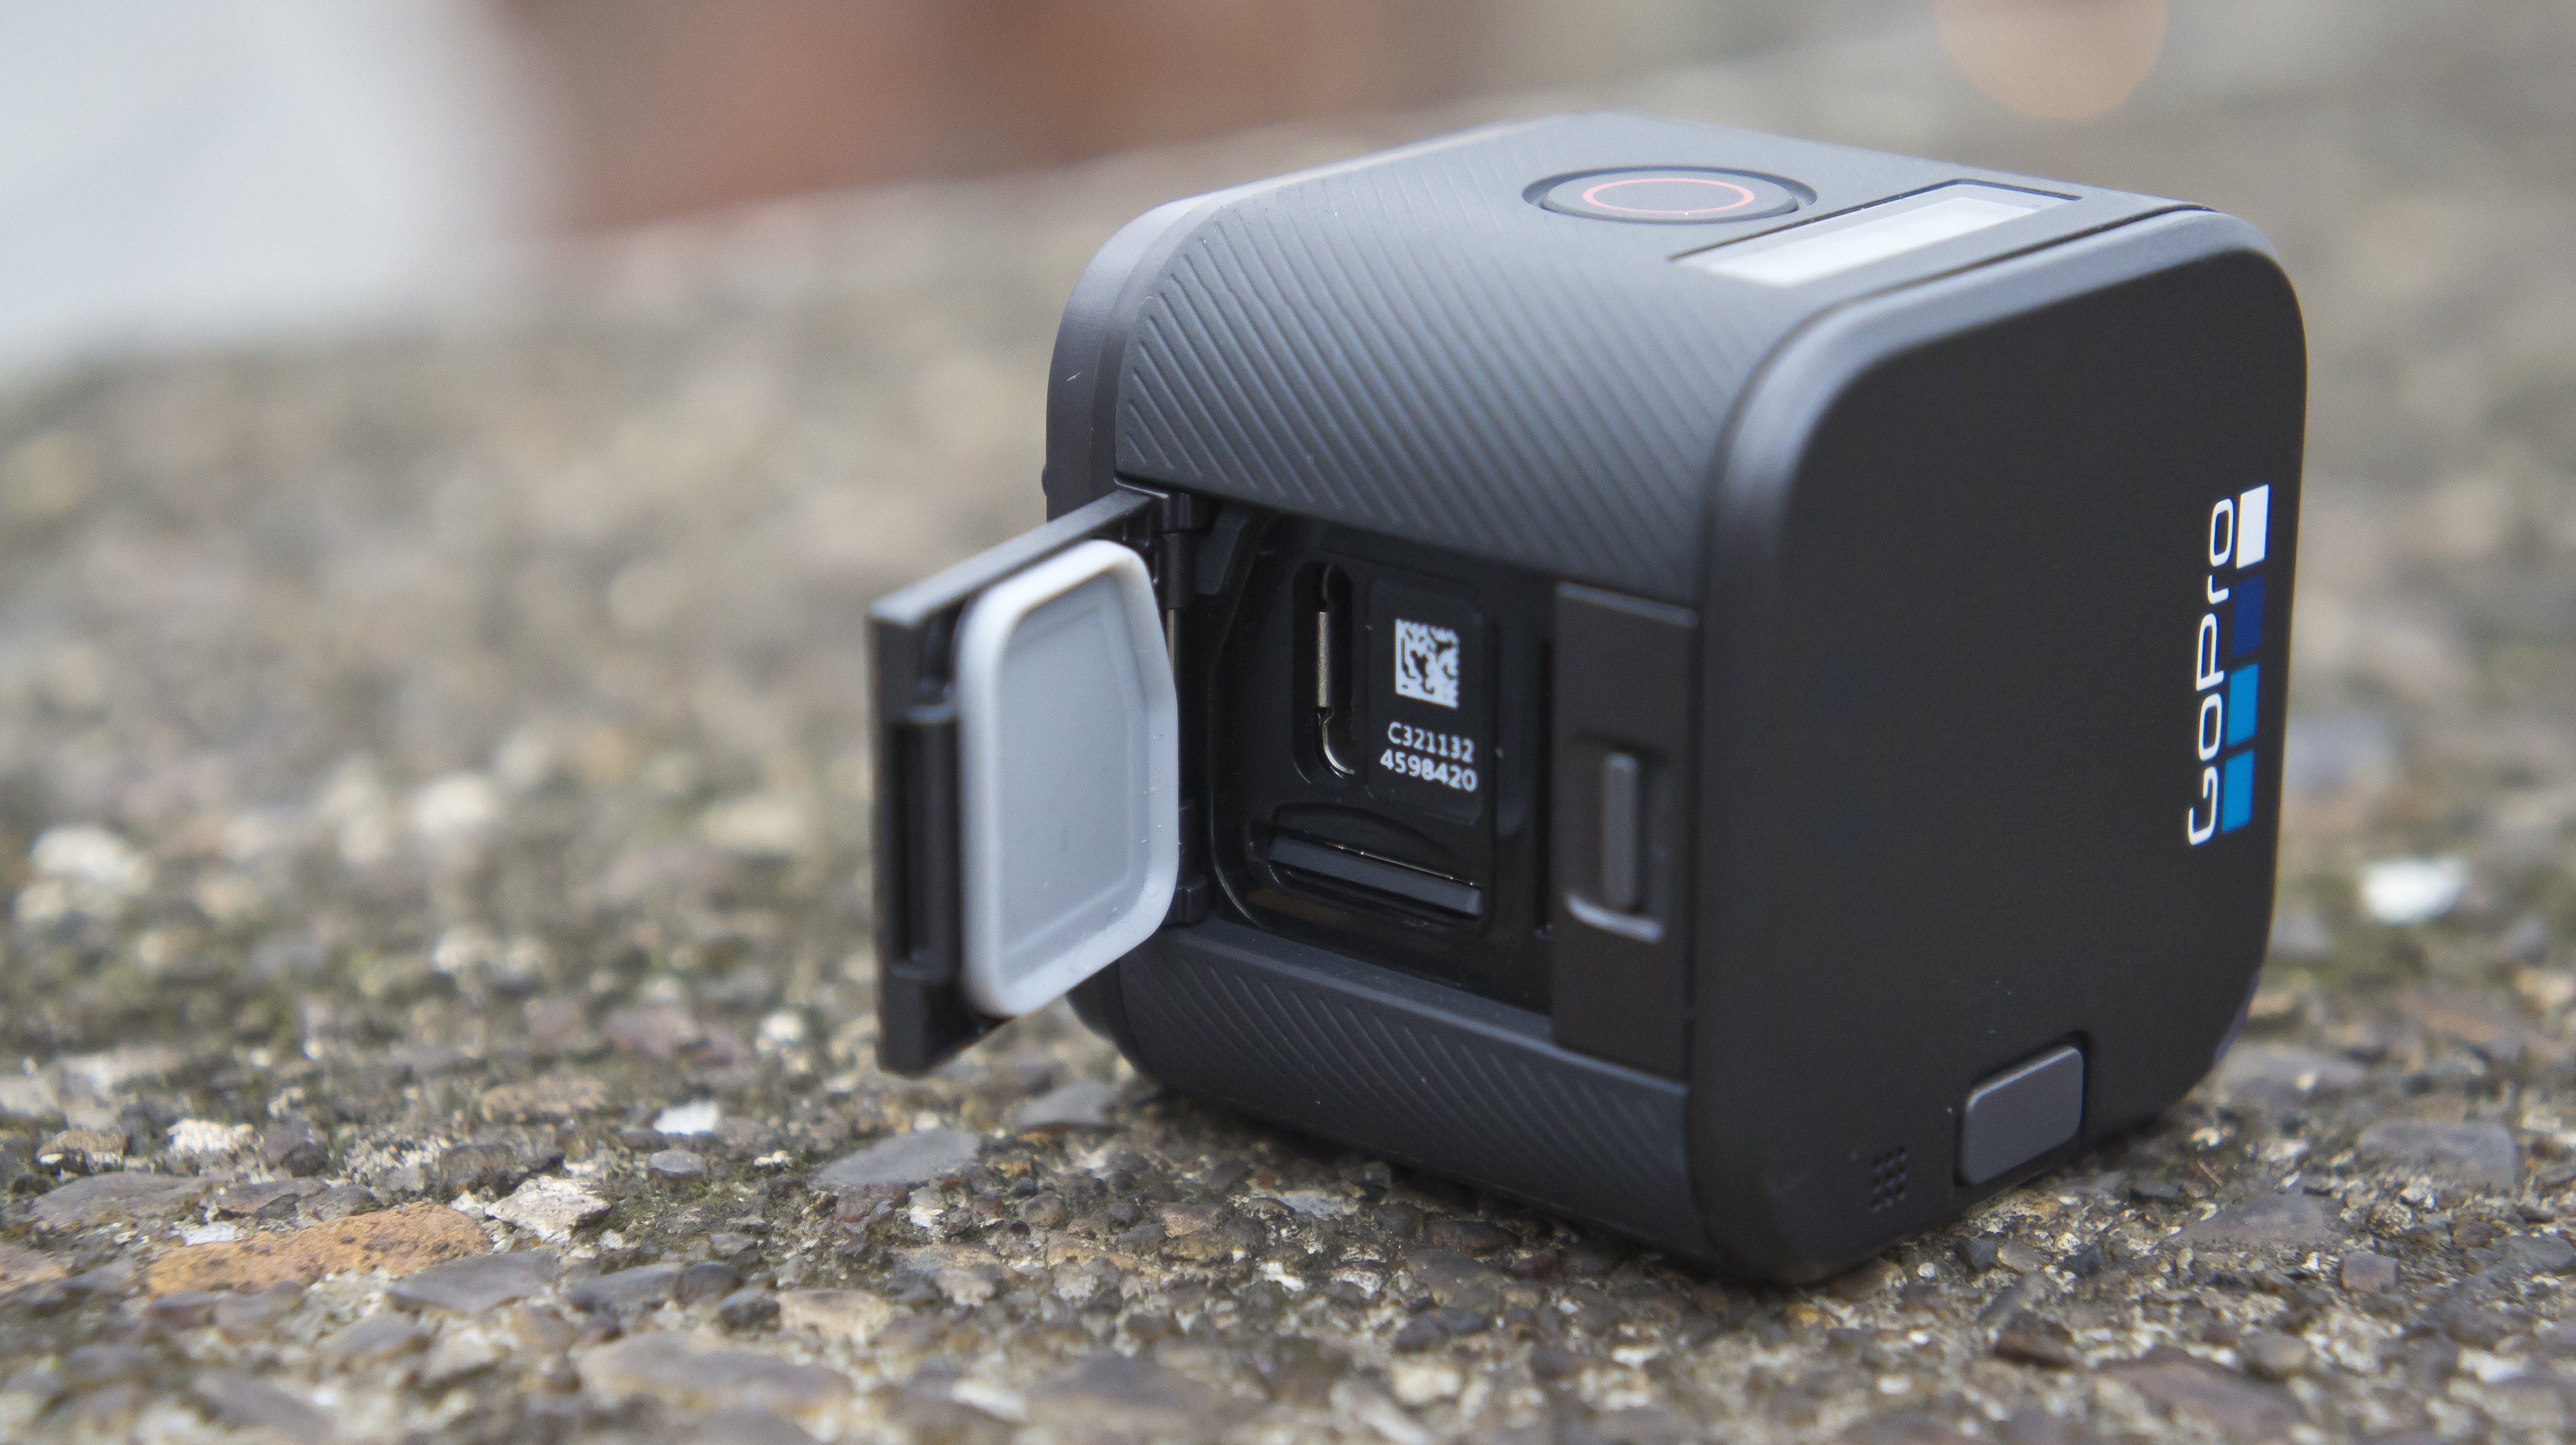 Gopro Hero 5 Session Review Size Doesnt Matter Now Only 139 Hero5 Black Edition Go Pro Once This Was The Feature That Made It Stand Out From Its Siblings But Has Proper Waterproofing Too No Longer Feels Quite